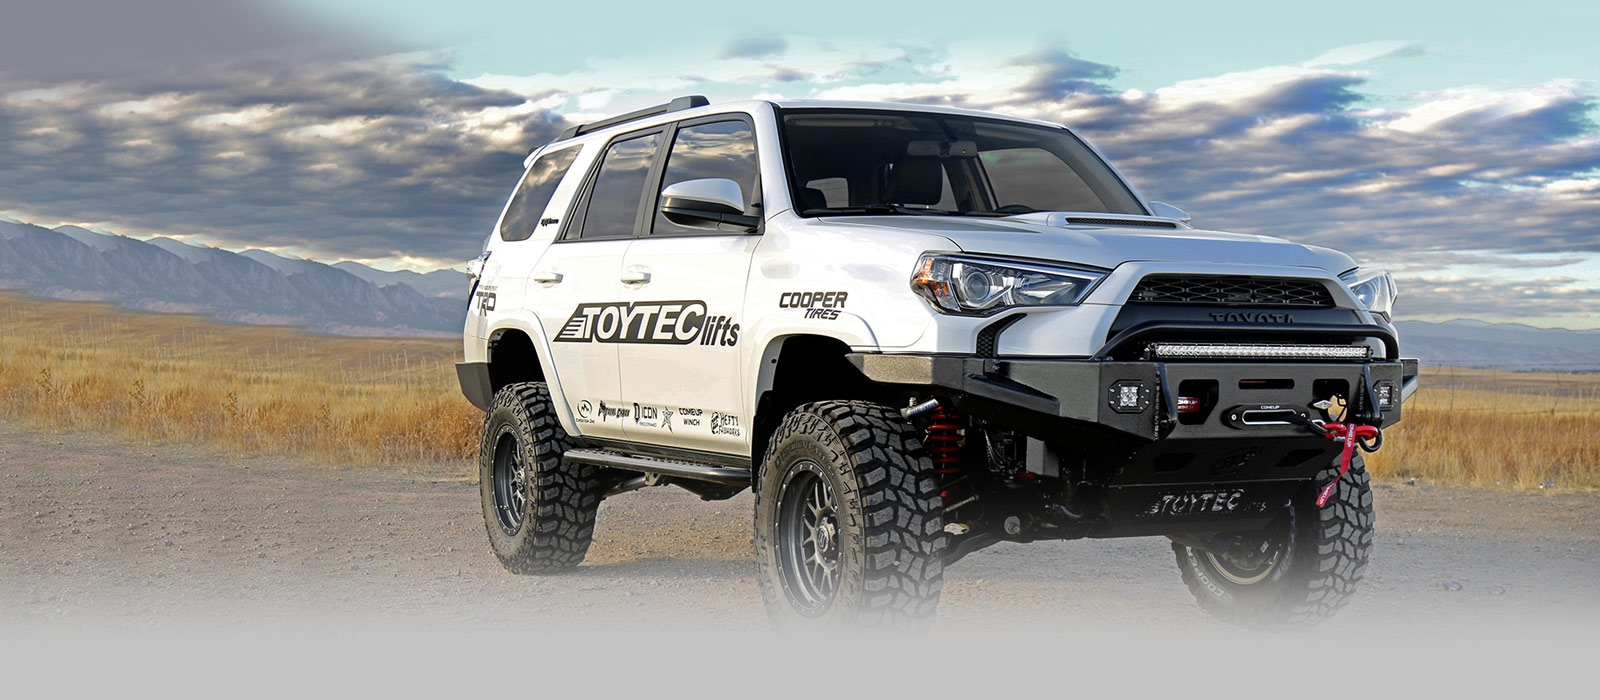 http://www.theoffroadcompany.com/cms/resources/contentfiles/pageBanners/Header-Banner-toytec.jpg